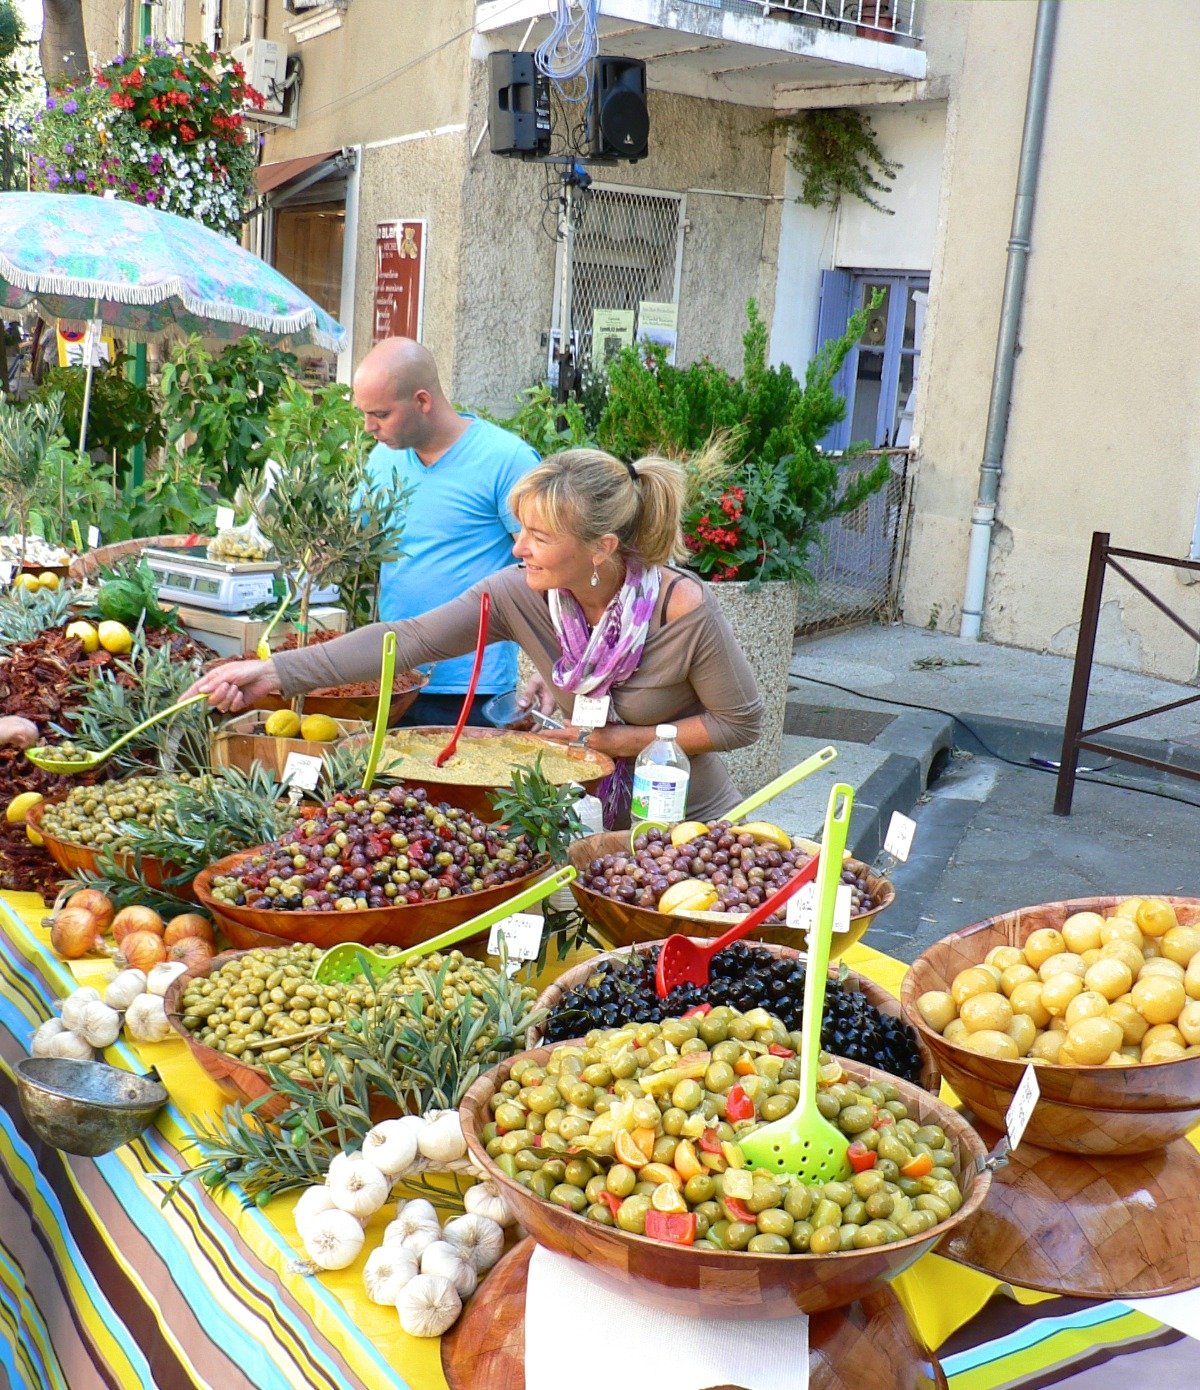 Olives: The Good, The Bad and The Ugly